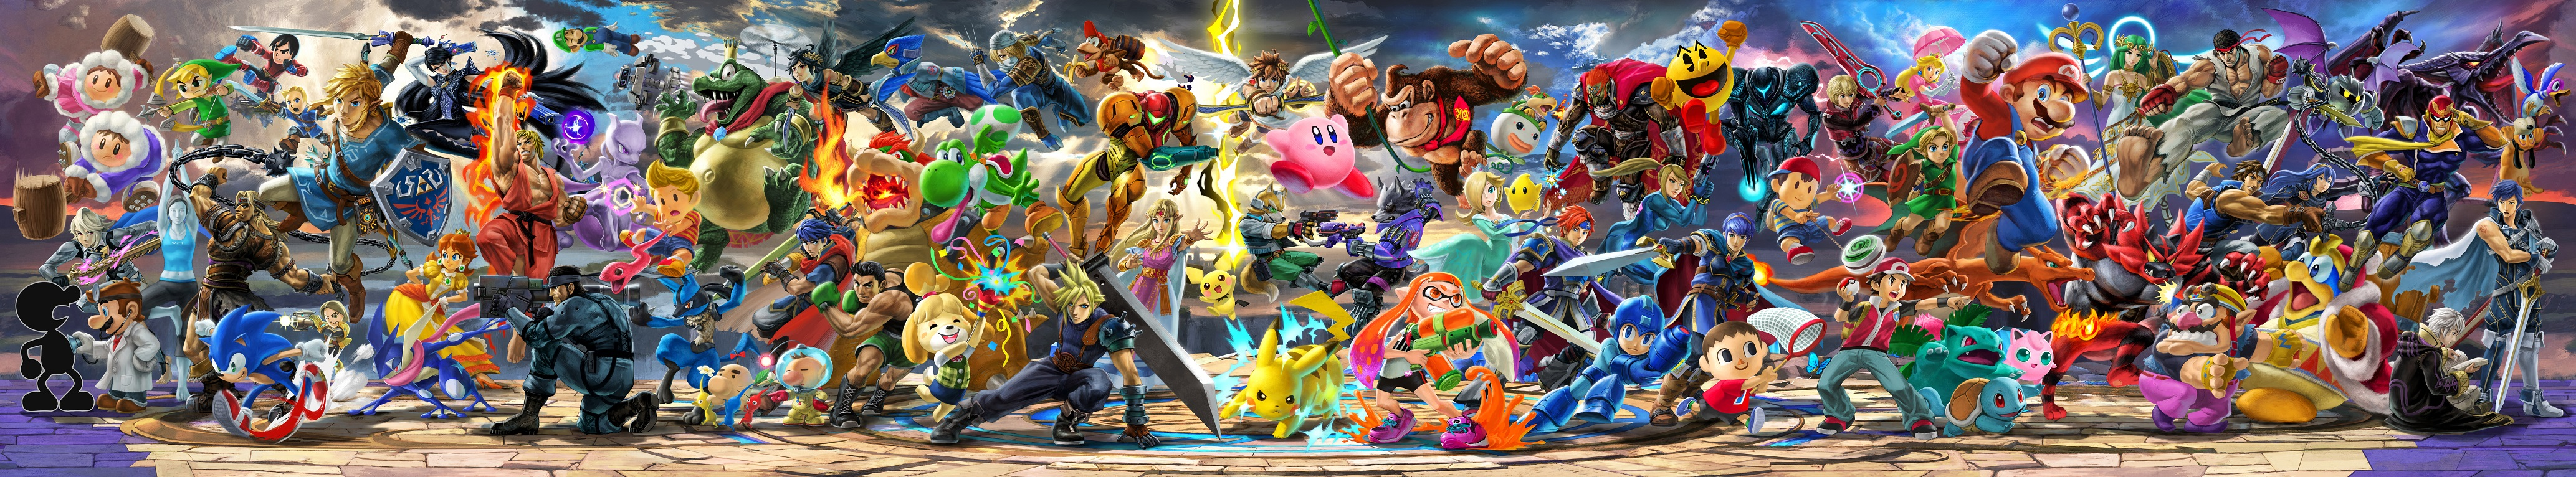 Test Super Smash Bros Ultimate - Bannière